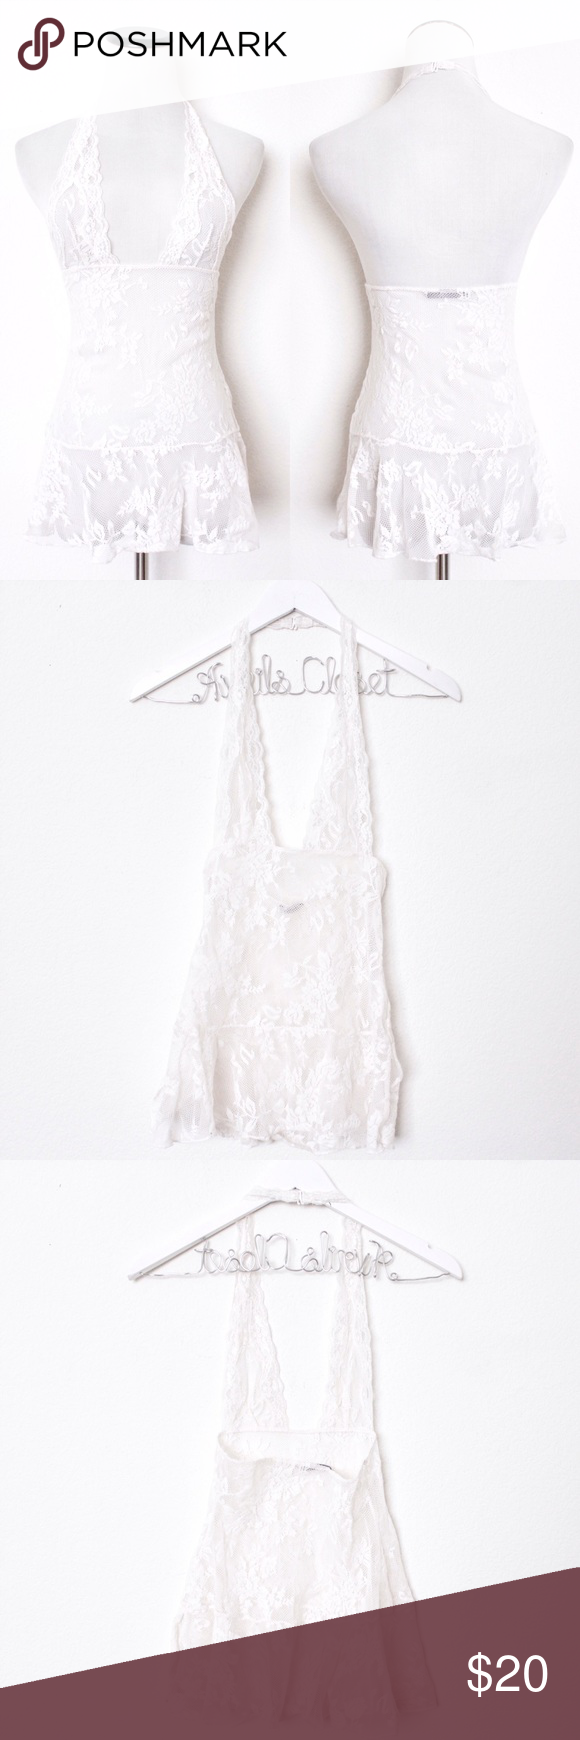 "White Lace Ruffle Halter Teddy Victoria's Secret ⑊ no size tag (but I'm sure it's XS)  ⌁ Measurements: 25"" length 12"" under bust line 6.5"" X 3"" cups  ⌁ Material: 100% nylon  ⌁ Condition: Used once. No visible wear. Great condition!  ⌁ Note: Ruffle has a slit on one side.  Comment below if you have any questions. Please make all offers using the ""offer"" button. No trades. No holds. Comes from a smoke-free/pet-free home. Not responsible for lost/damaged mail. All sales are final. ♡ Victoria's…"